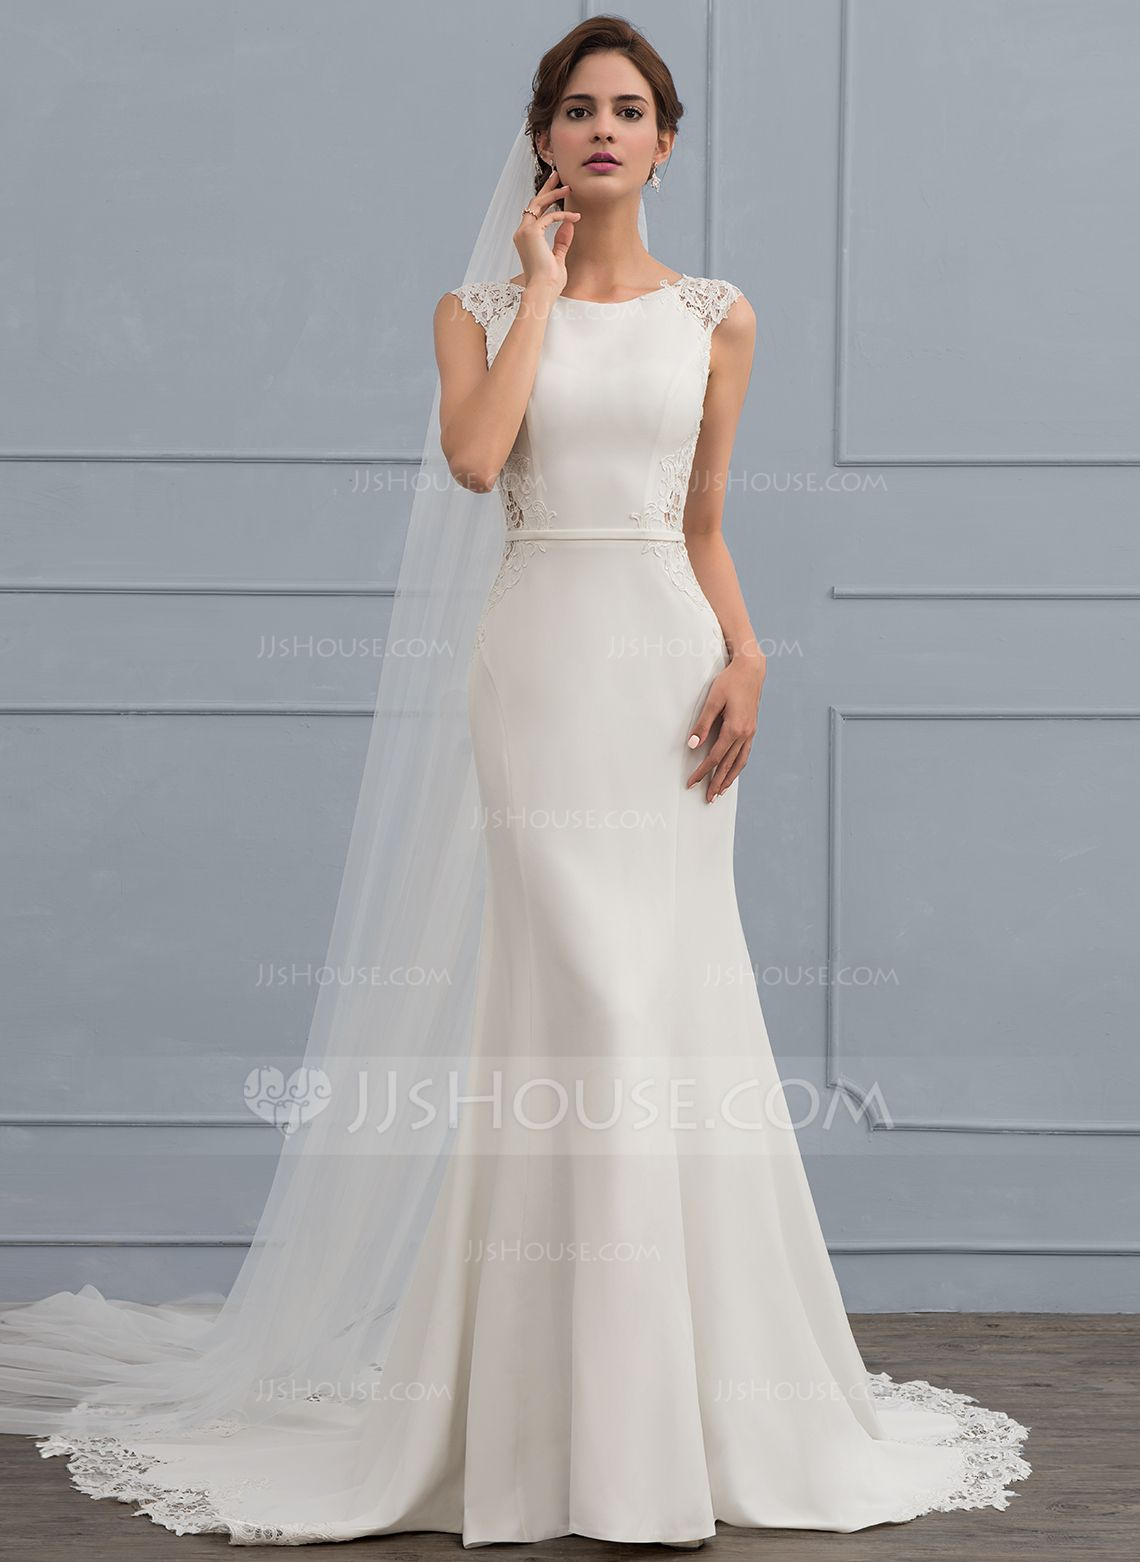 b8487d25f3b6 Trumpet/Mermaid Scoop Neck Court Train Satin Wedding Dress (002118439) - Wedding  Dresses - JJsHouse